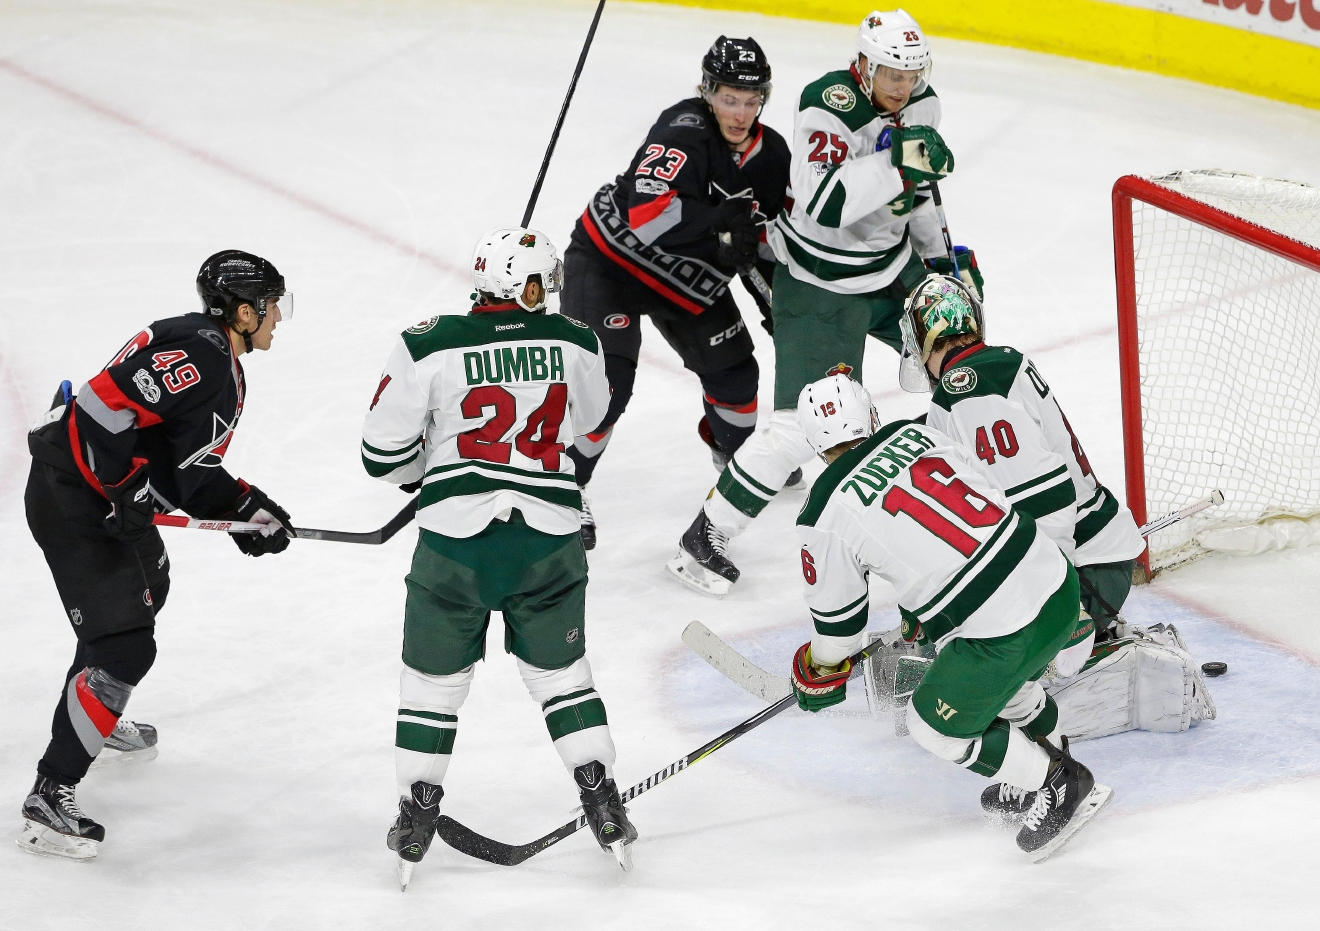 Carolina Hurricanes' Victor Rask (49), of Sweden, and Hurricanes' Brock McGinn (23) watch Rask's game winning shot on Minnesota Wild goalie Devan Dubnyk (40) as Wild's Matt Dumba (24), Jason Zucker (16) and Jonas Brodin (25), of Sweden, watch during the third period of an NHL hockey game in Raleigh, N.C., Thursday, March 16, 2017. Carolina won 3-1. (AP Photo/Gerry Broome)